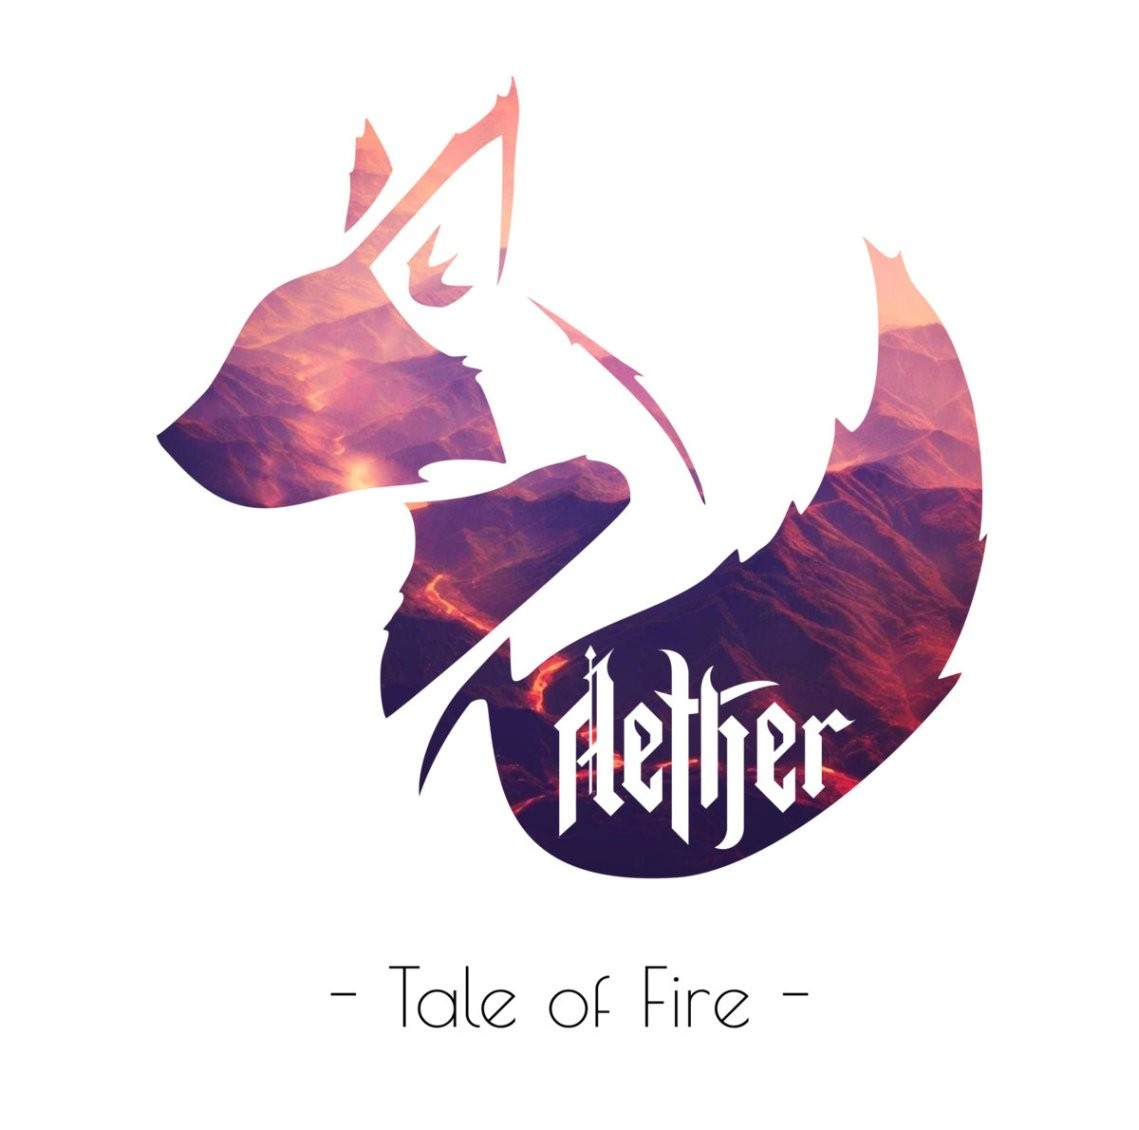 Aether - Tale of Fire